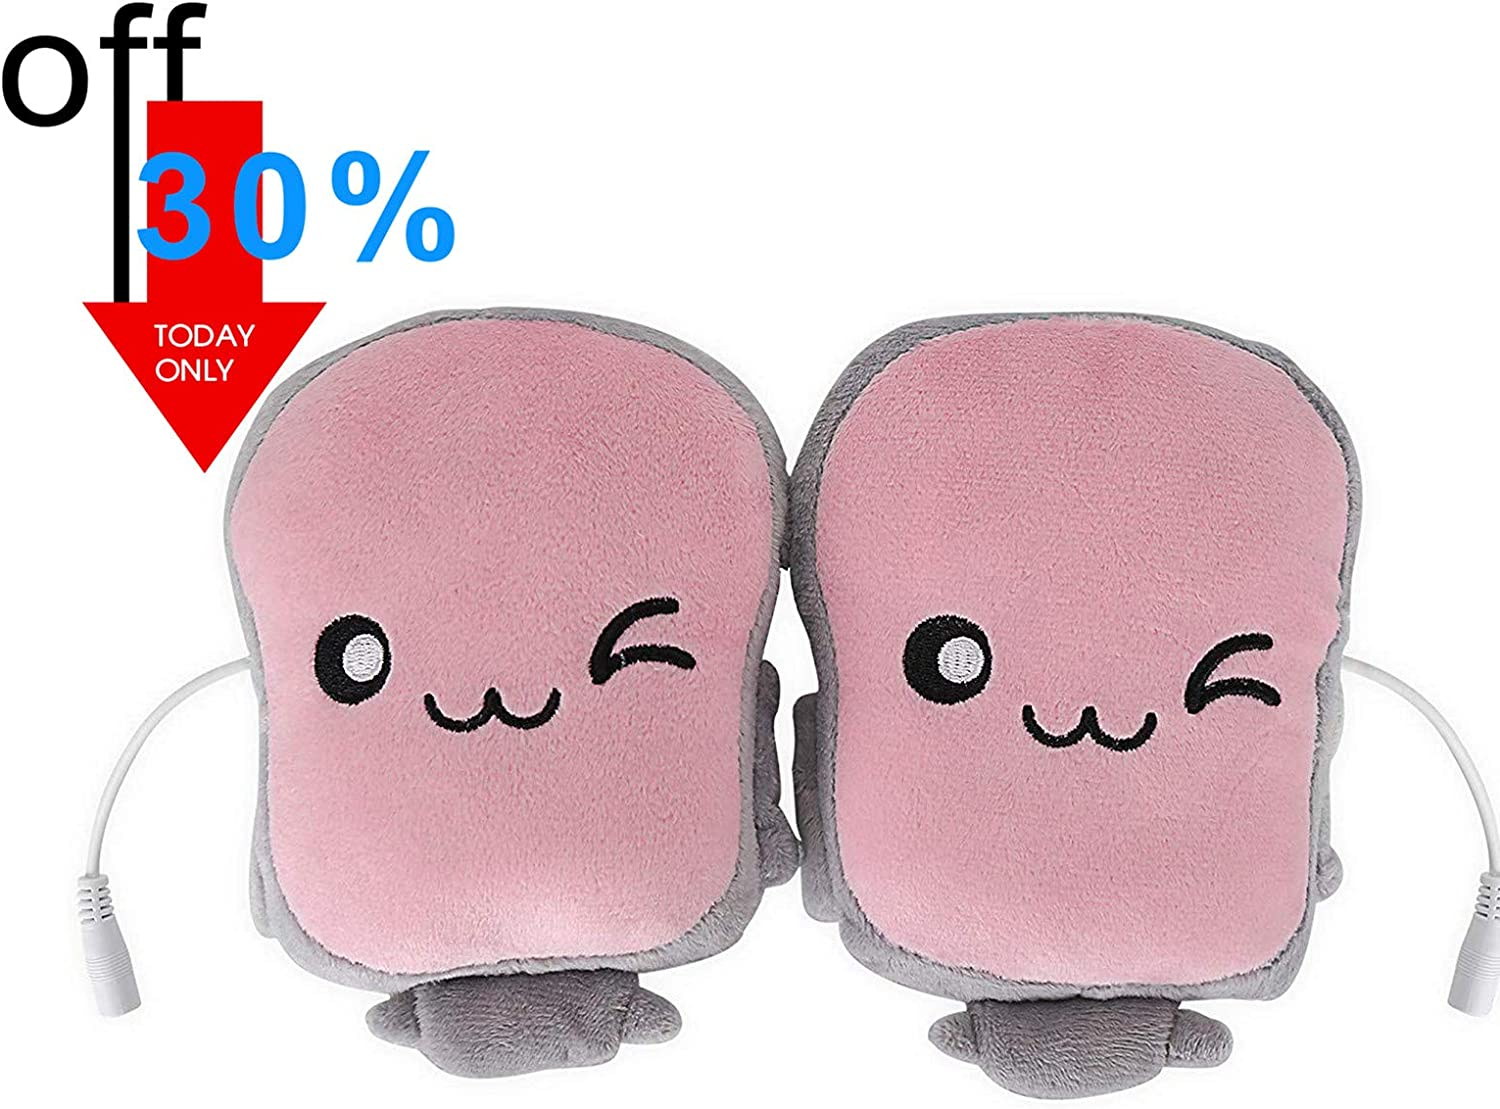 Free Amazon Promo Code 2020 for USB Hand Warmers Cute USB Heating Gloves